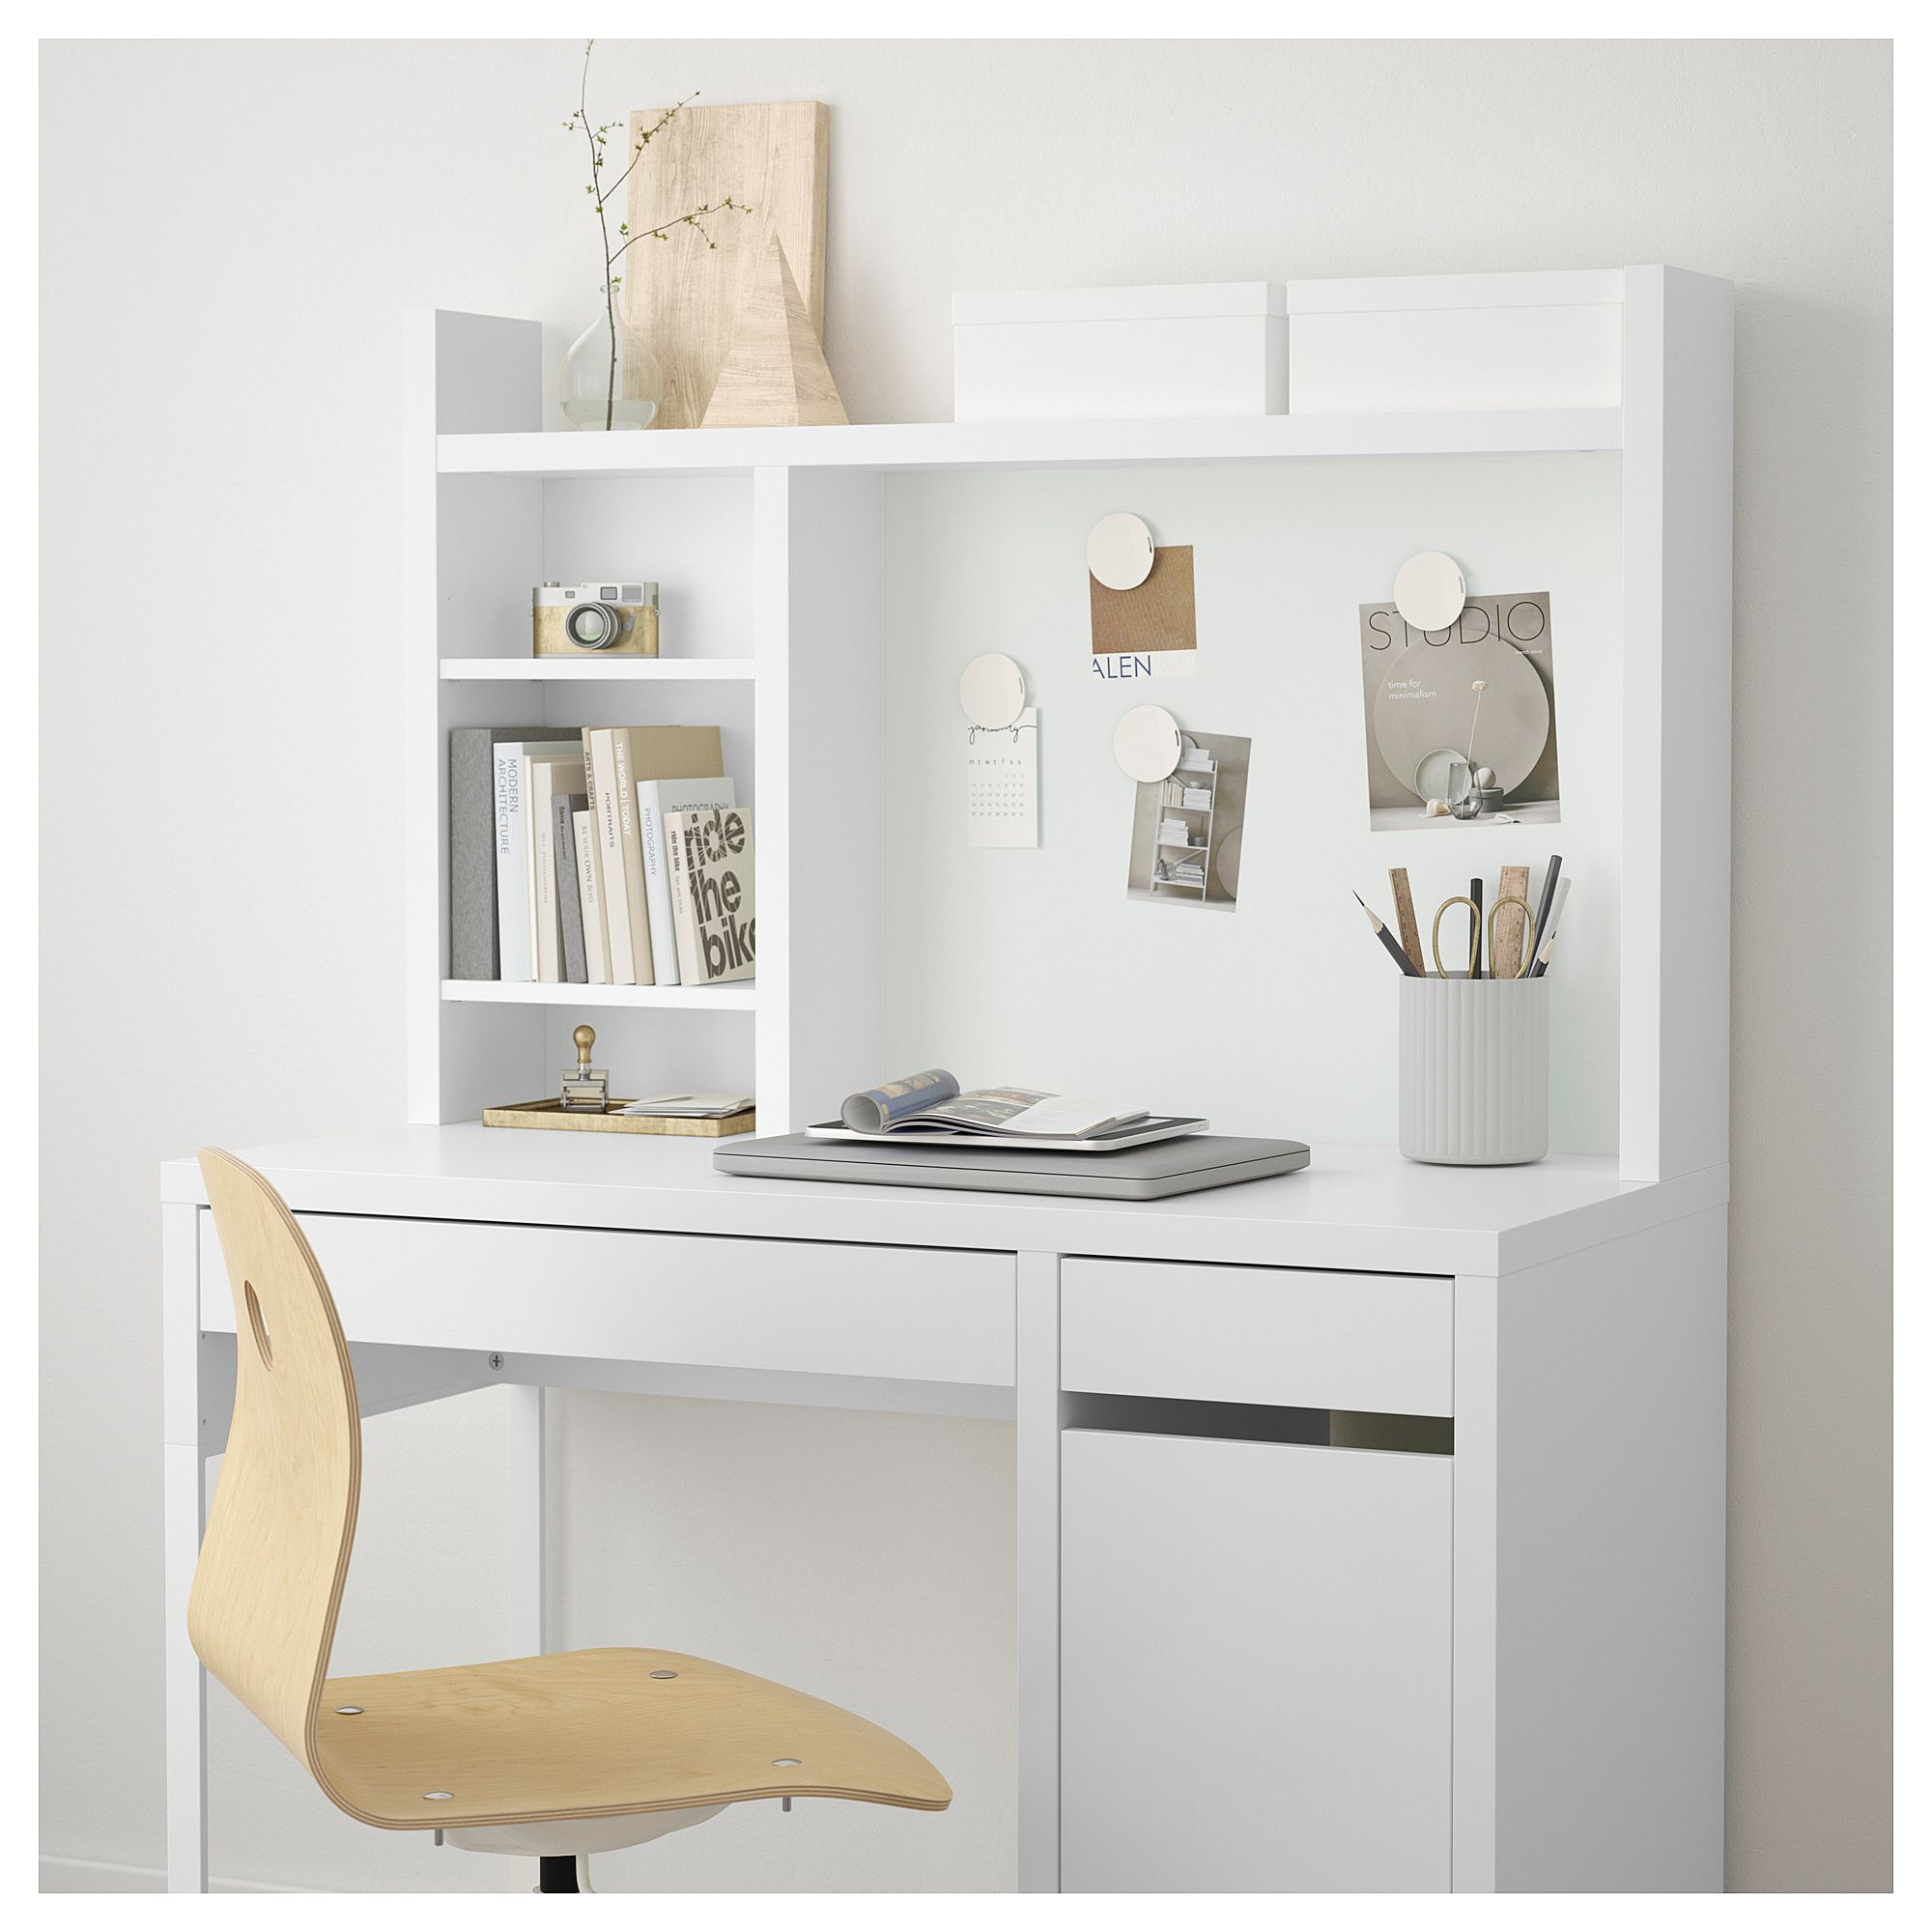 Micke Add On Unit High White 41 3 8x25 5 8 Ikea Stylish Bedroom Study Room Decor Home Office Design